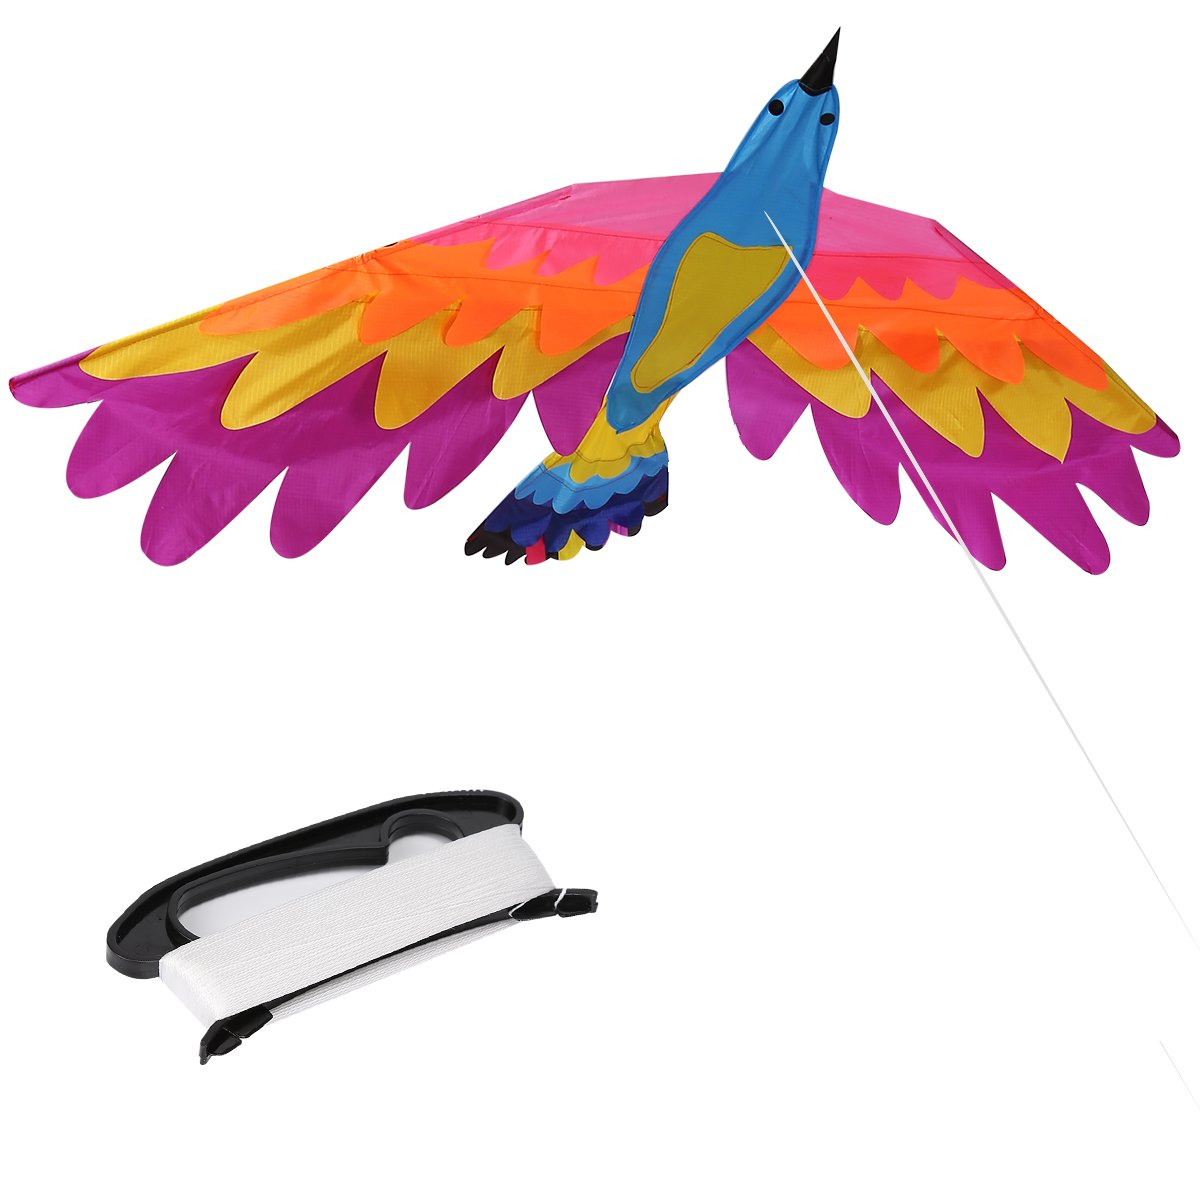 ZS-Juyi Bird Kite Huge Beginner Phoenix Kites for Kids and Adults 71inch x 30inch Come with Come with String and Handle (Phoenix2)